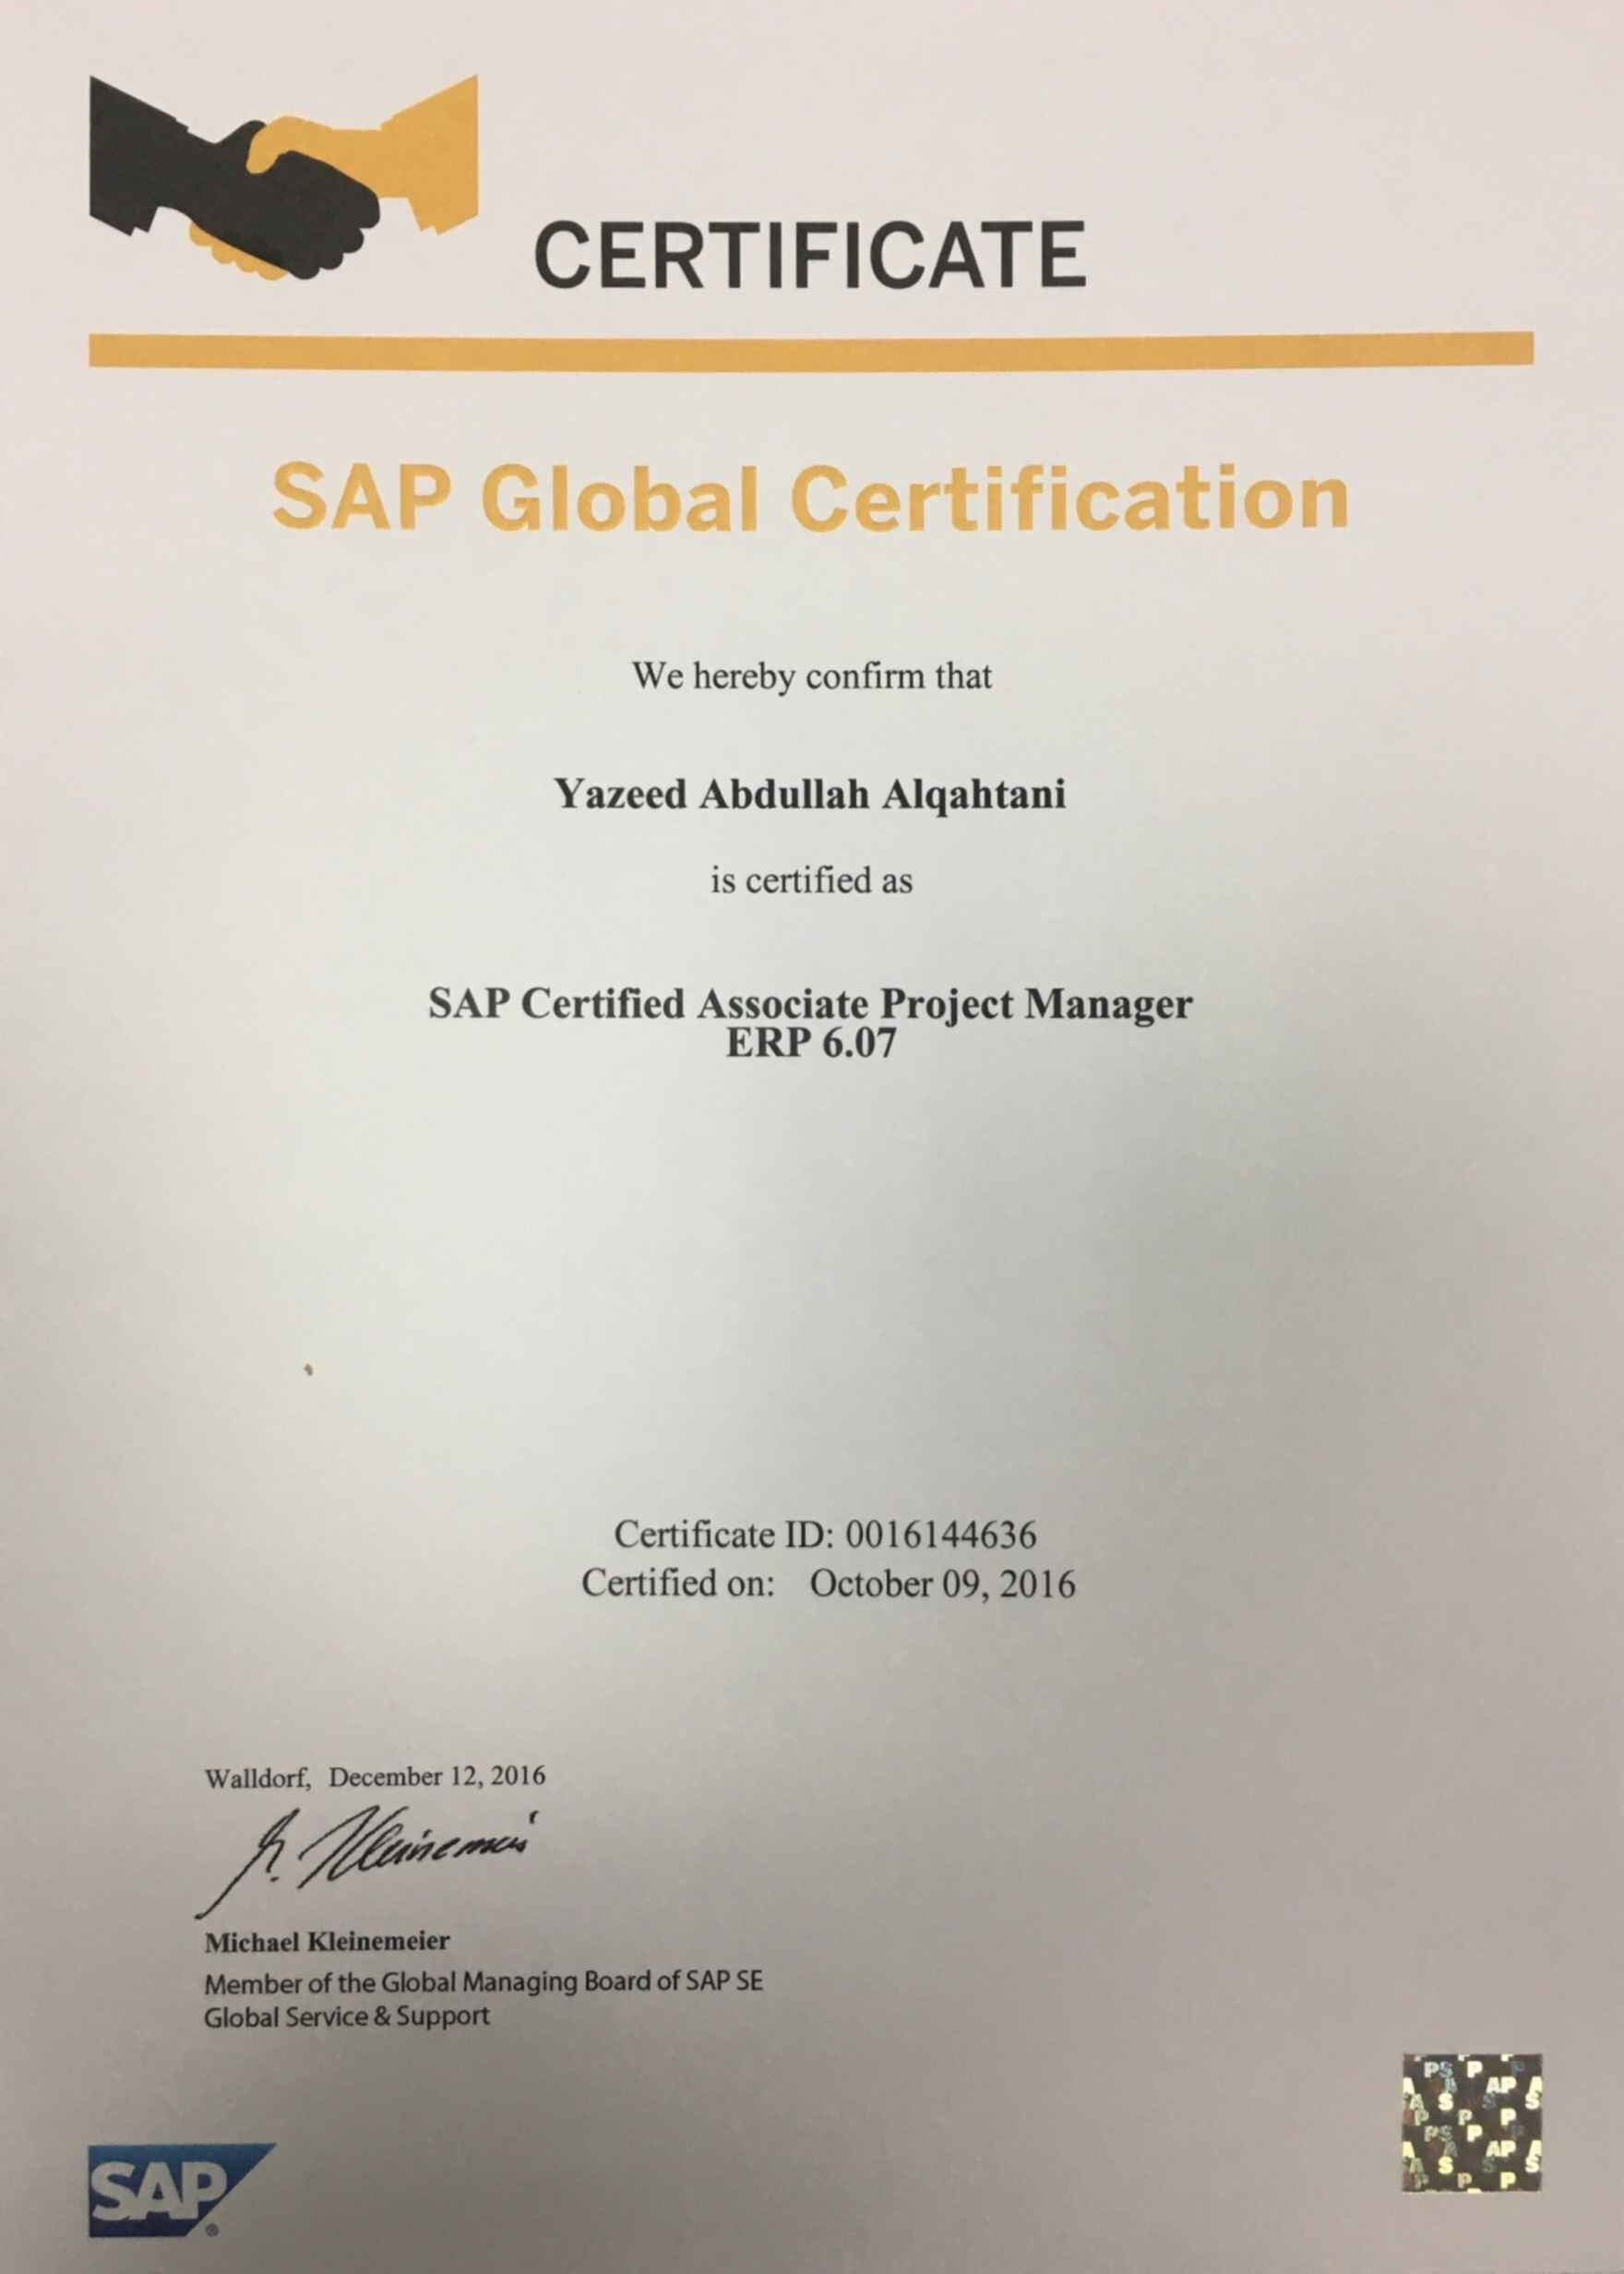 bayt sap certified associate project manager certificate 1betcityfo Choice Image